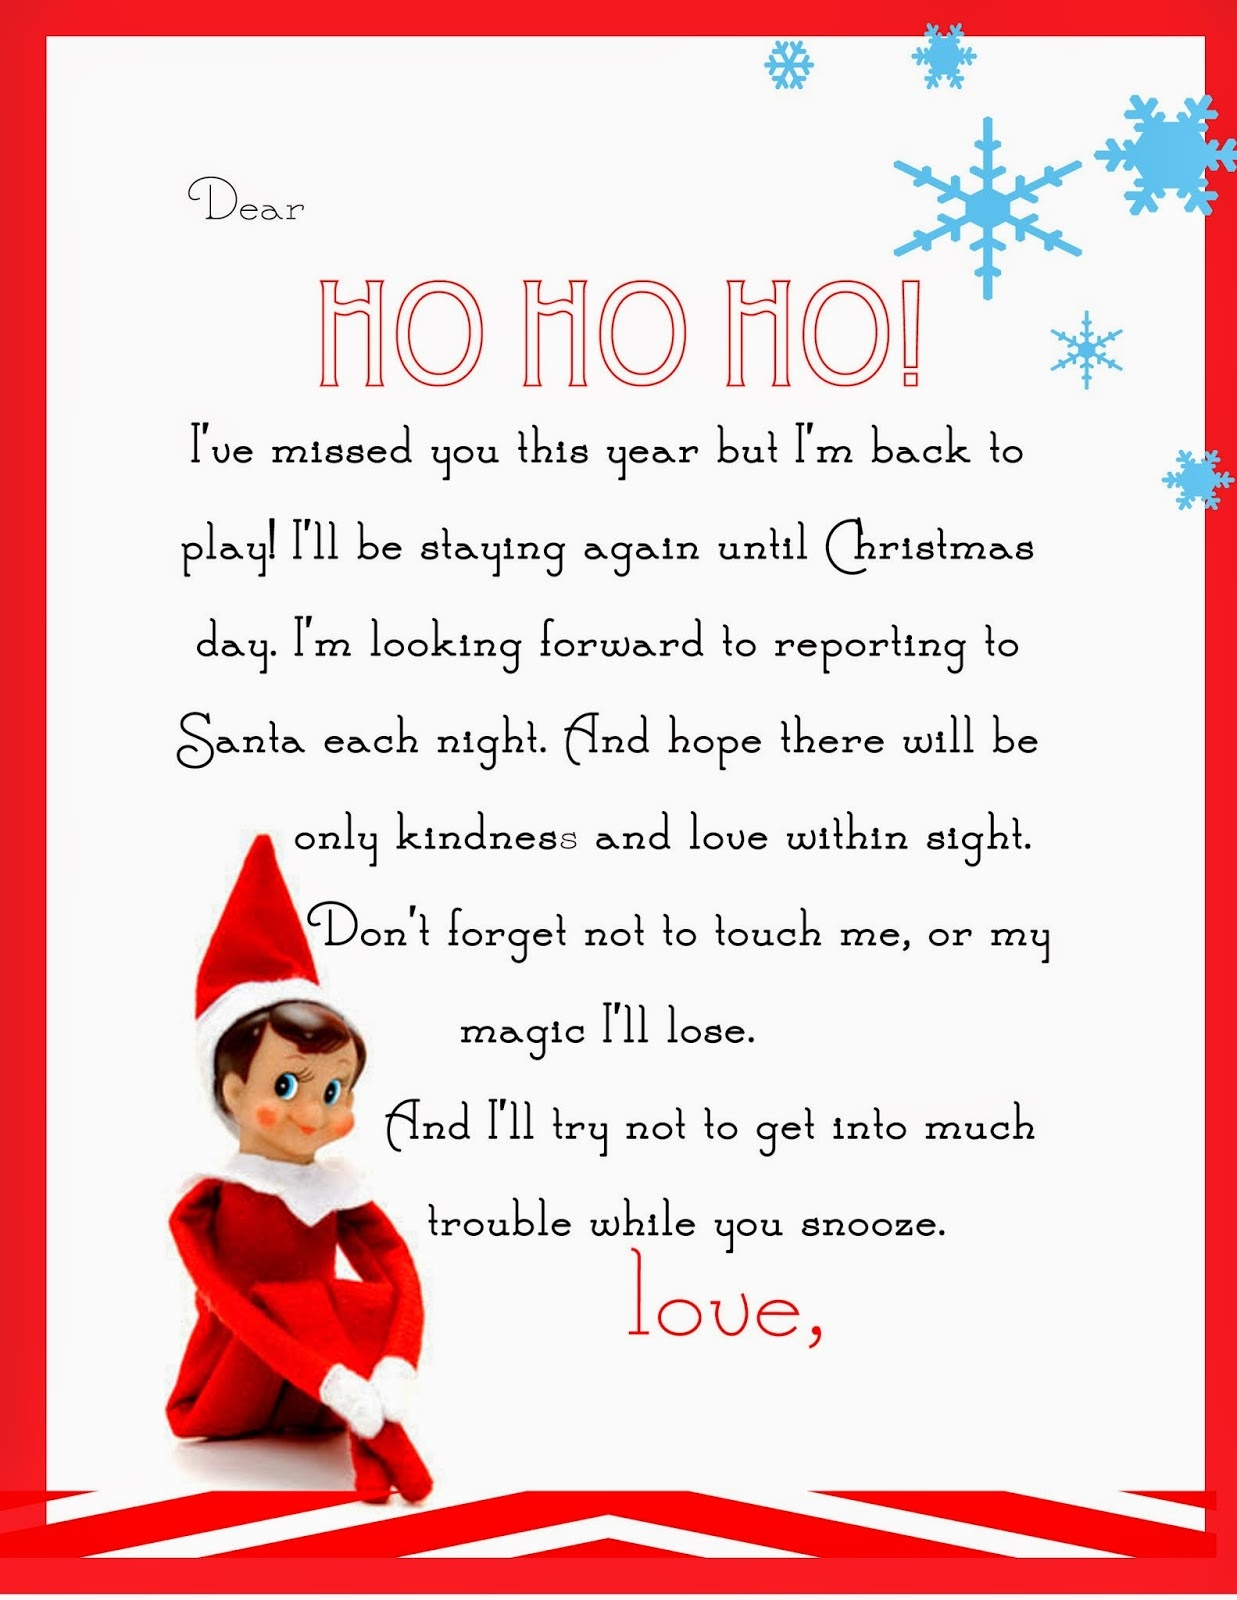 Elf On The Shelf Letter {Free Printable} - Free Printable Elf On The Shelf Notes